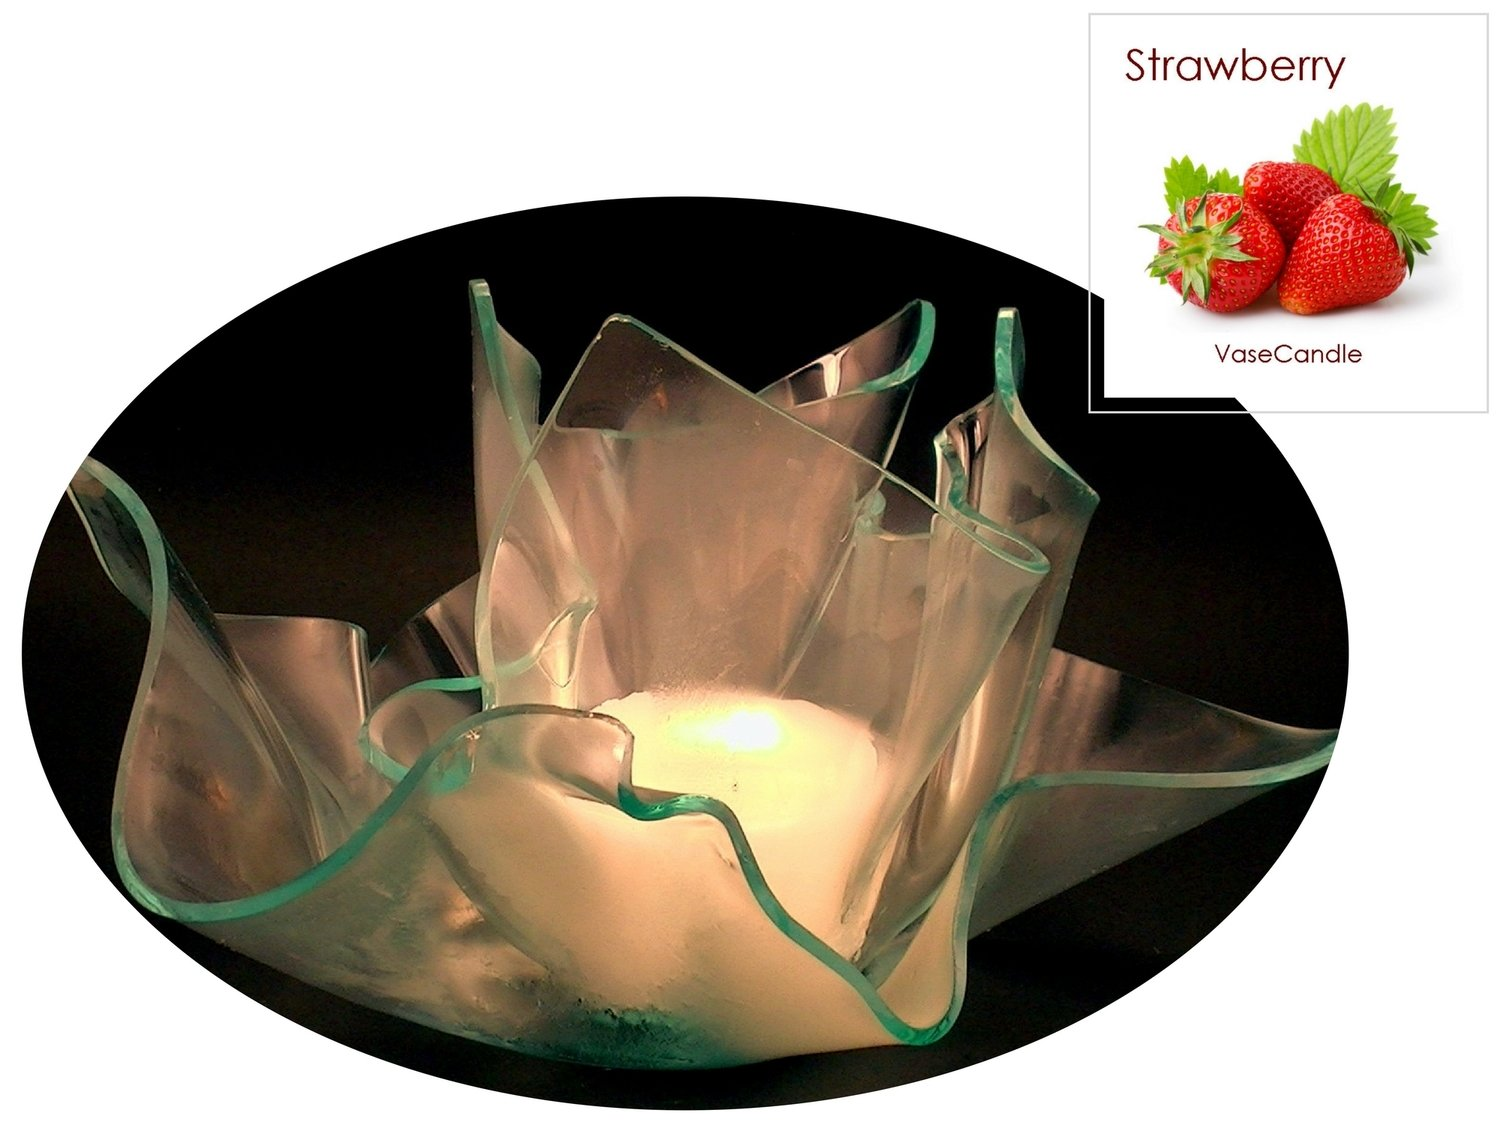 2 Strawberry Candle Refills | Clear Satin Vase & Dish Set